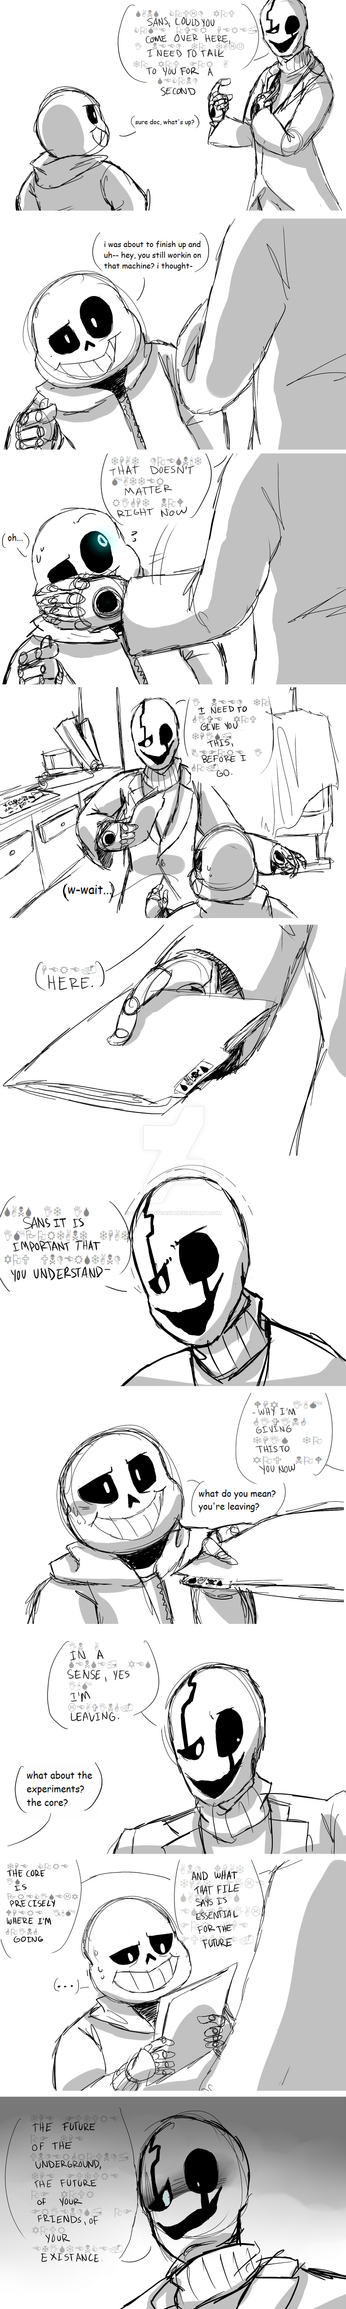 Gaster's Farewell [PART 1 of 4] by OatsAndToast